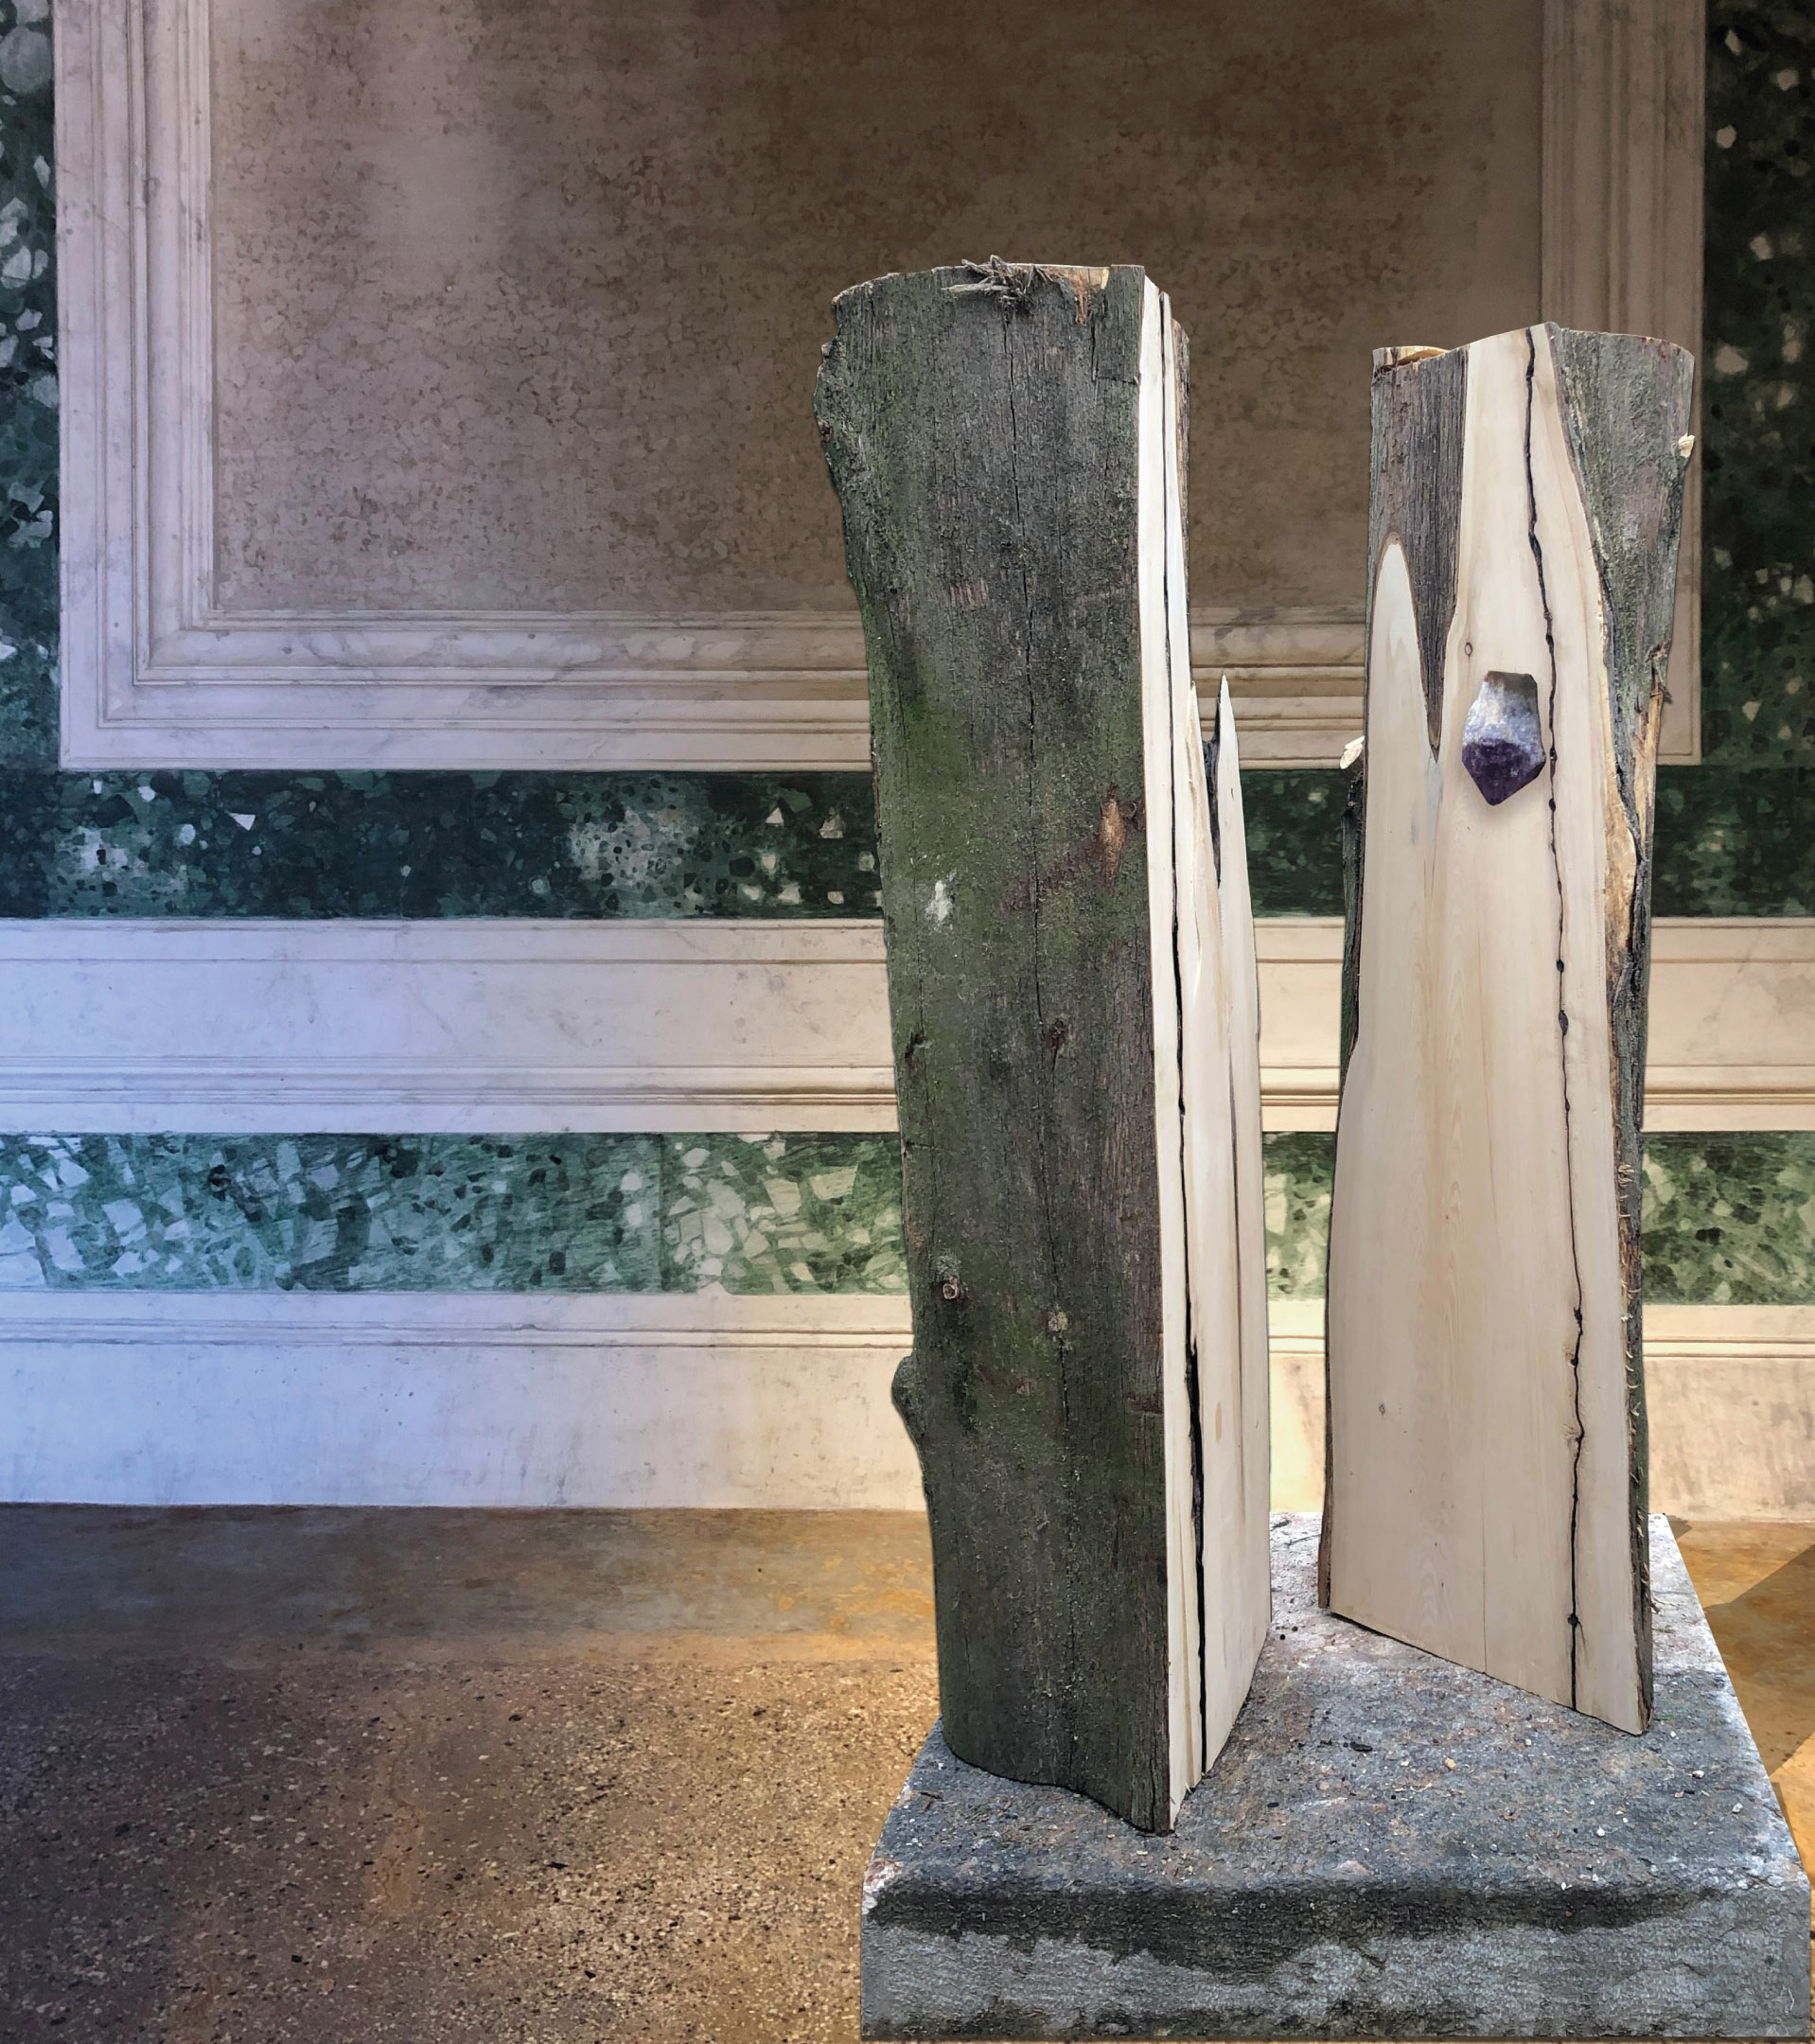 02-THERAW-THECOOKED-AARON-NACHTAILER-ART-ARTIST-CRYSTALS-SCULPTURES